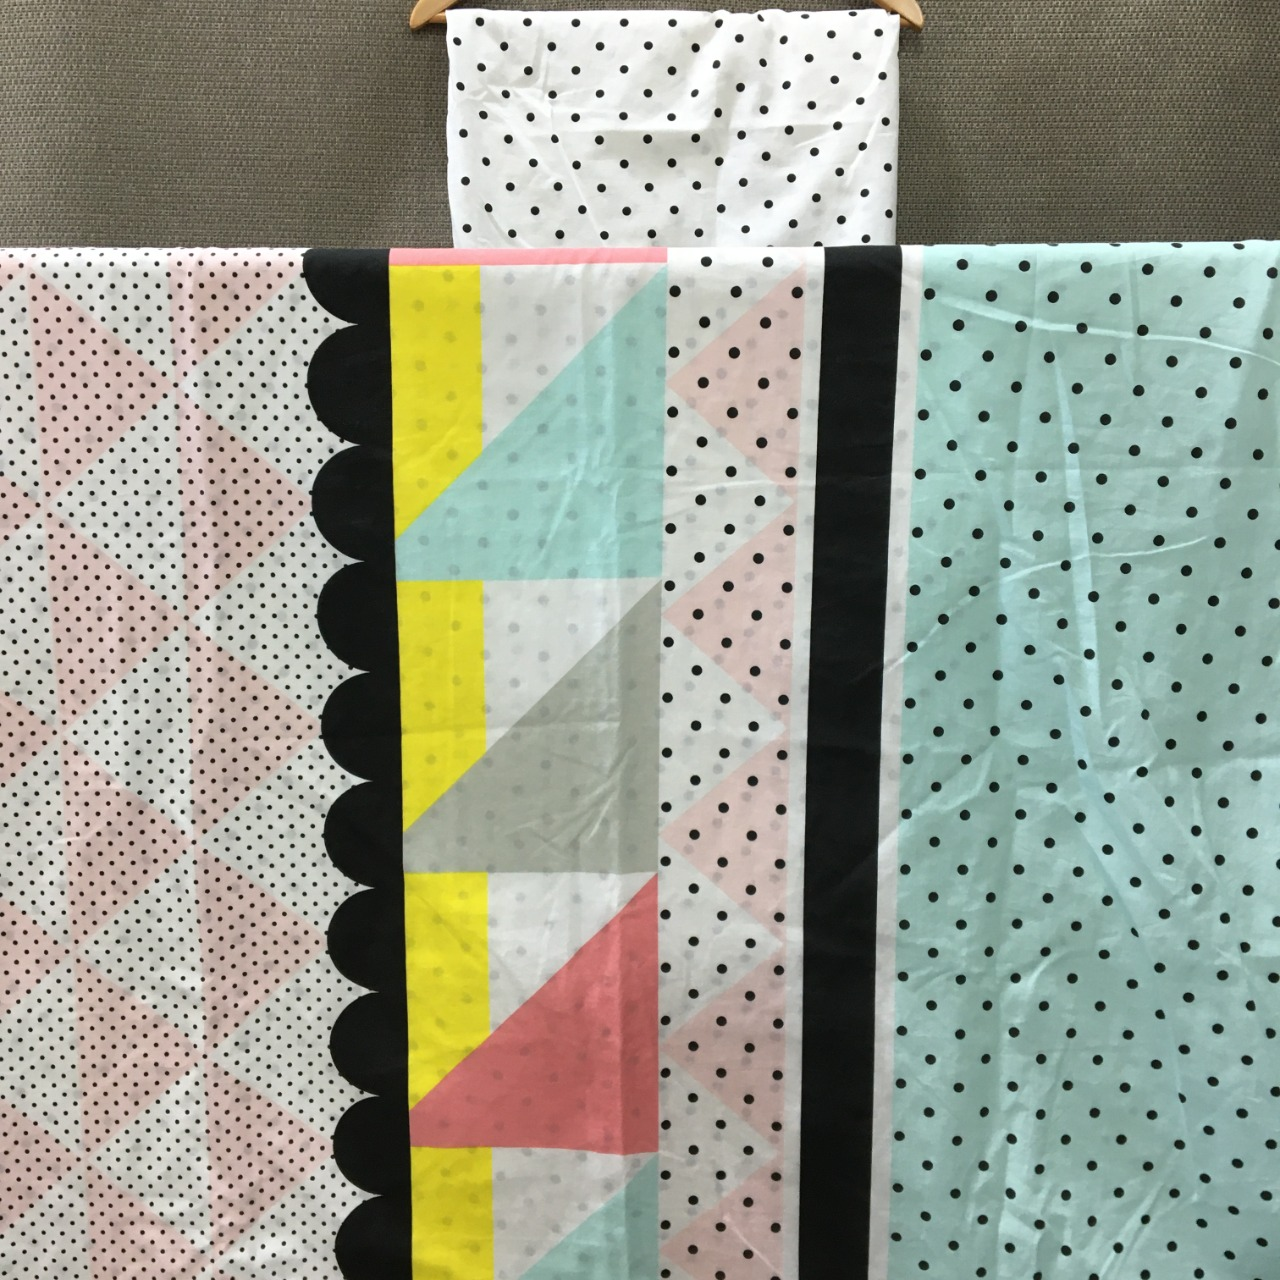 50% Off - Roomates, Quilt Cover Set, Geometric & Polka Dot Pattern, Single Bed